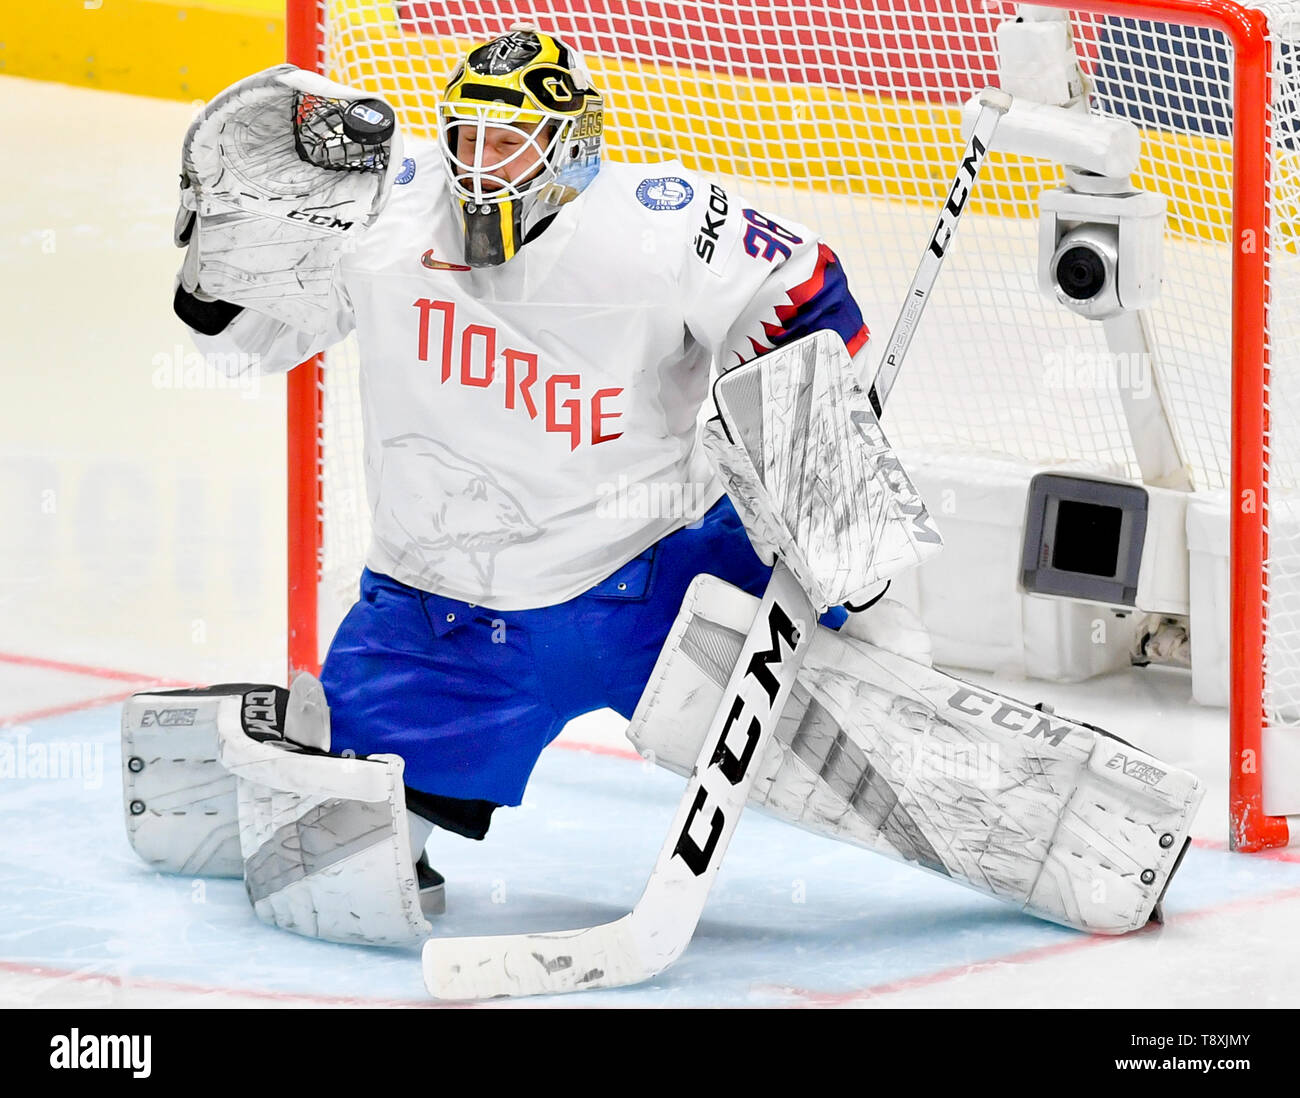 Bratislava, Slovakia. 15th May, 2019. Goaltender Henrik Holm (NOR) in action during the match between Switzerland and Norway within the 2019 IIHF World Championship in Bratislava, Slovakia, on May 15, 2019. Credit: Vit Simanek/CTK Photo/Alamy Live News Stock Photo